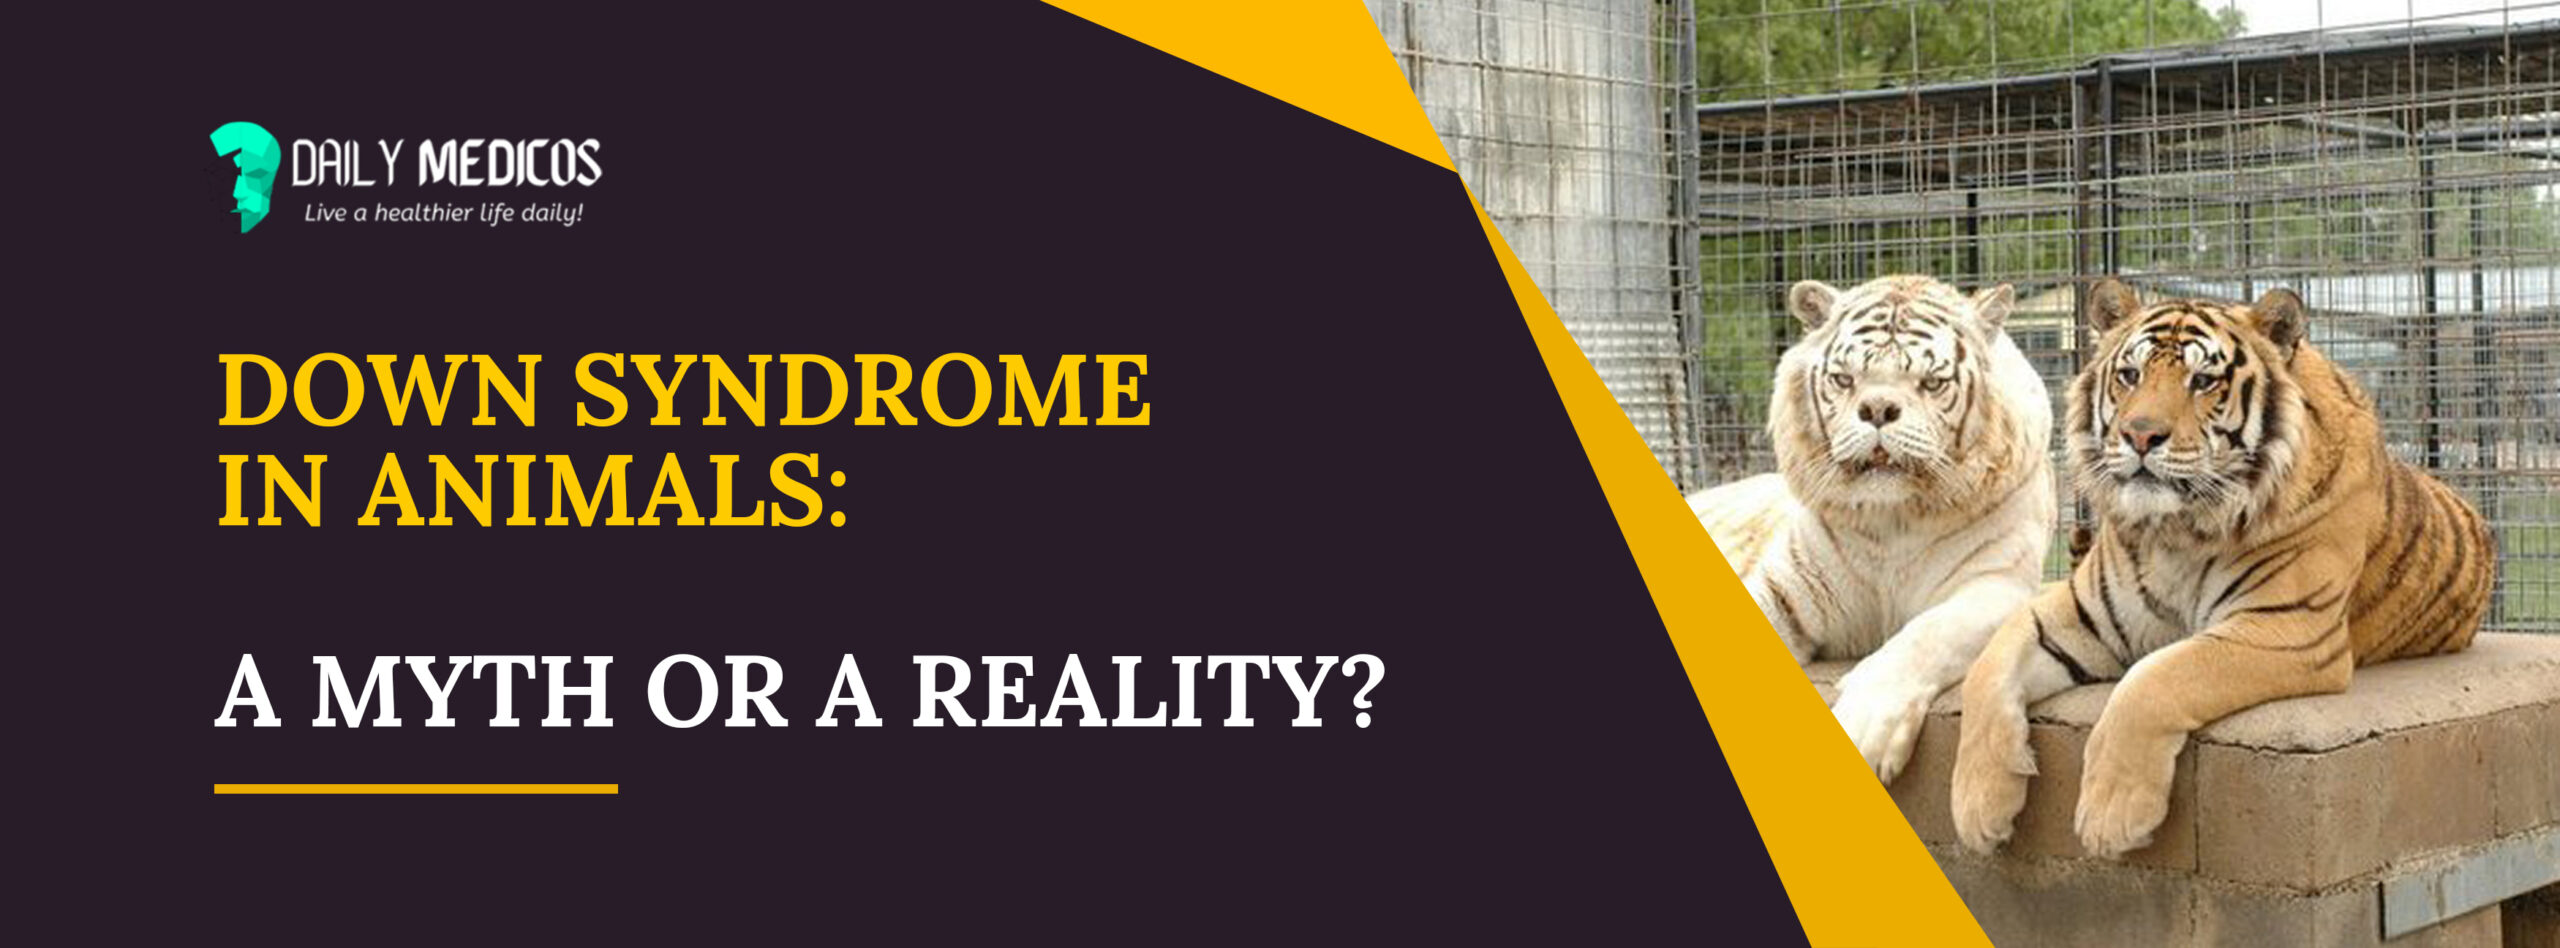 Down Syndrome In Animals: A Myth Or A Reality? 36 - Daily Medicos